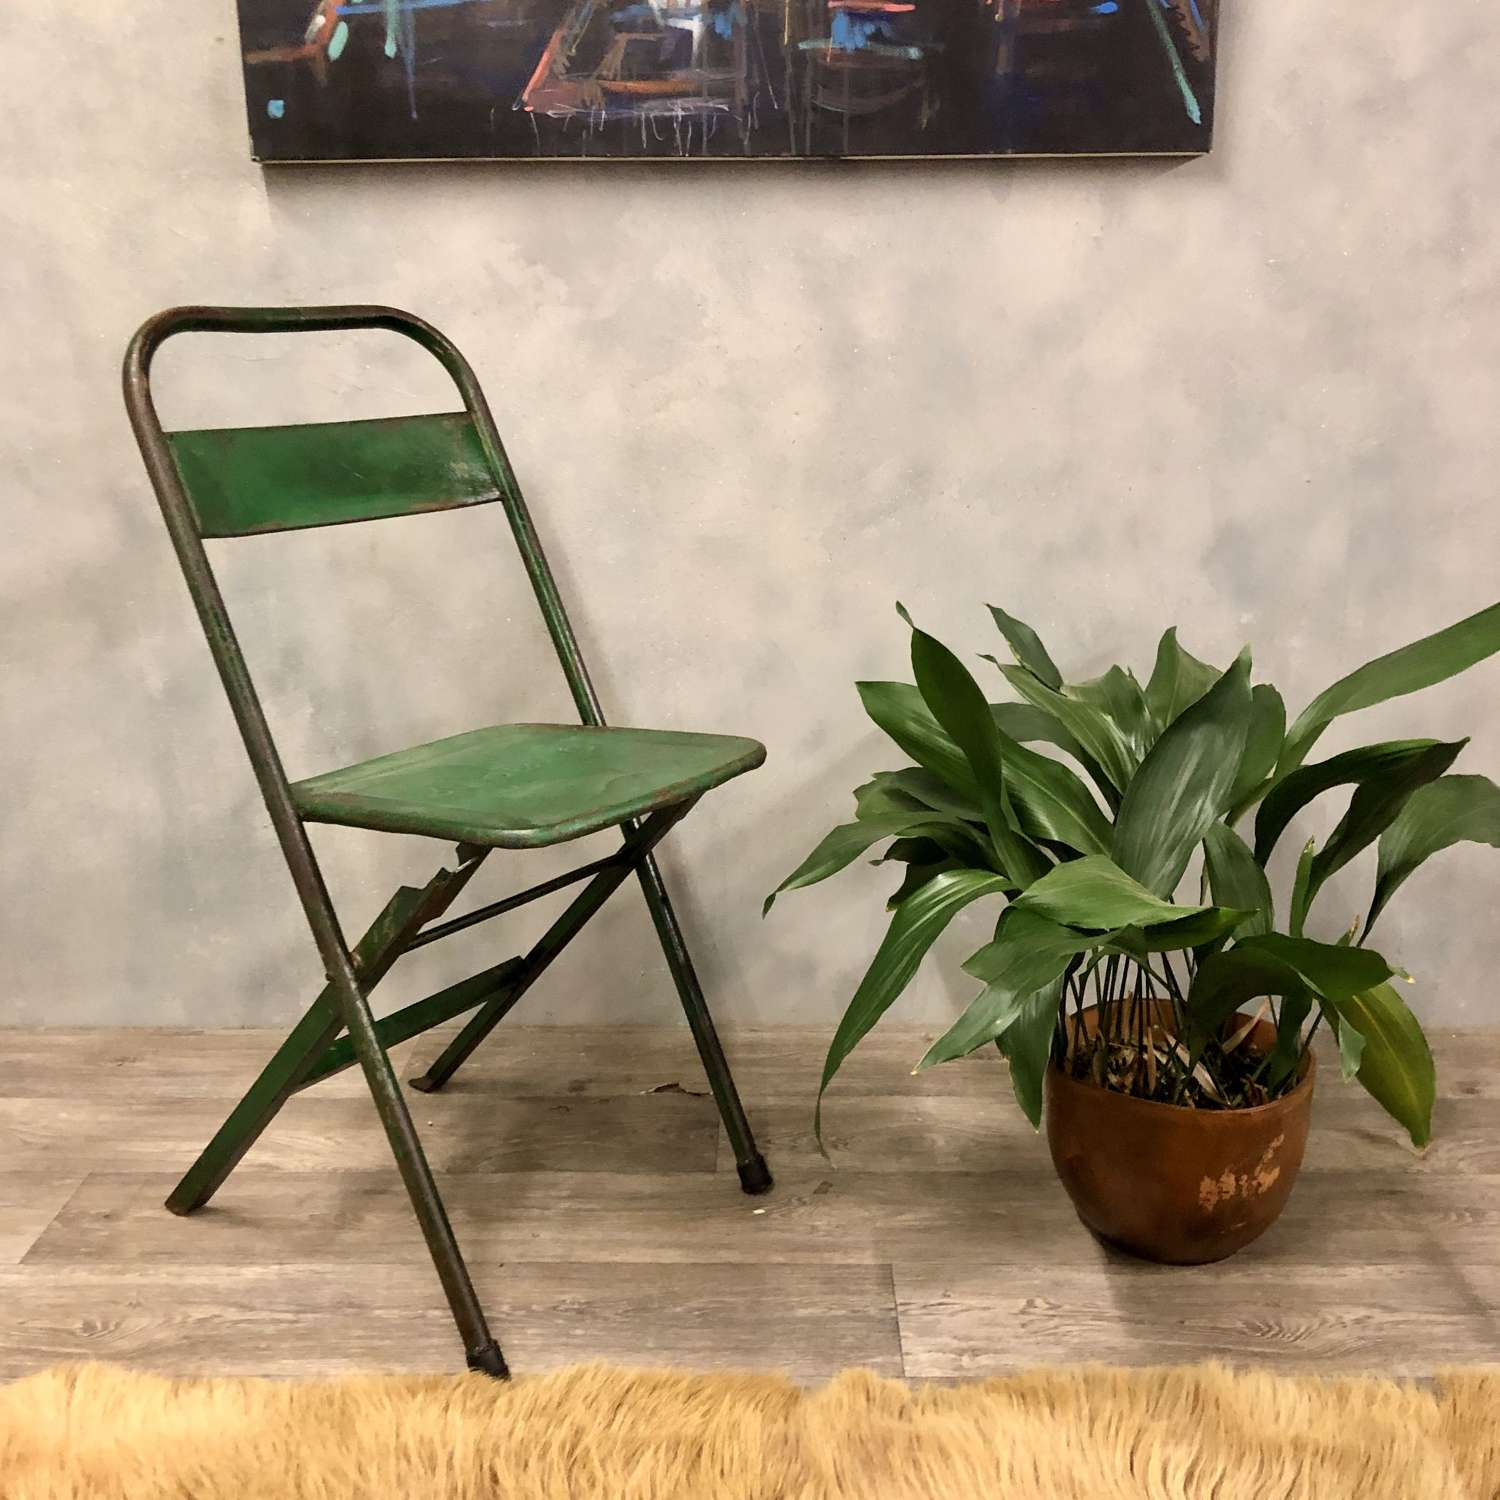 Vintage style metal fold up chair in green